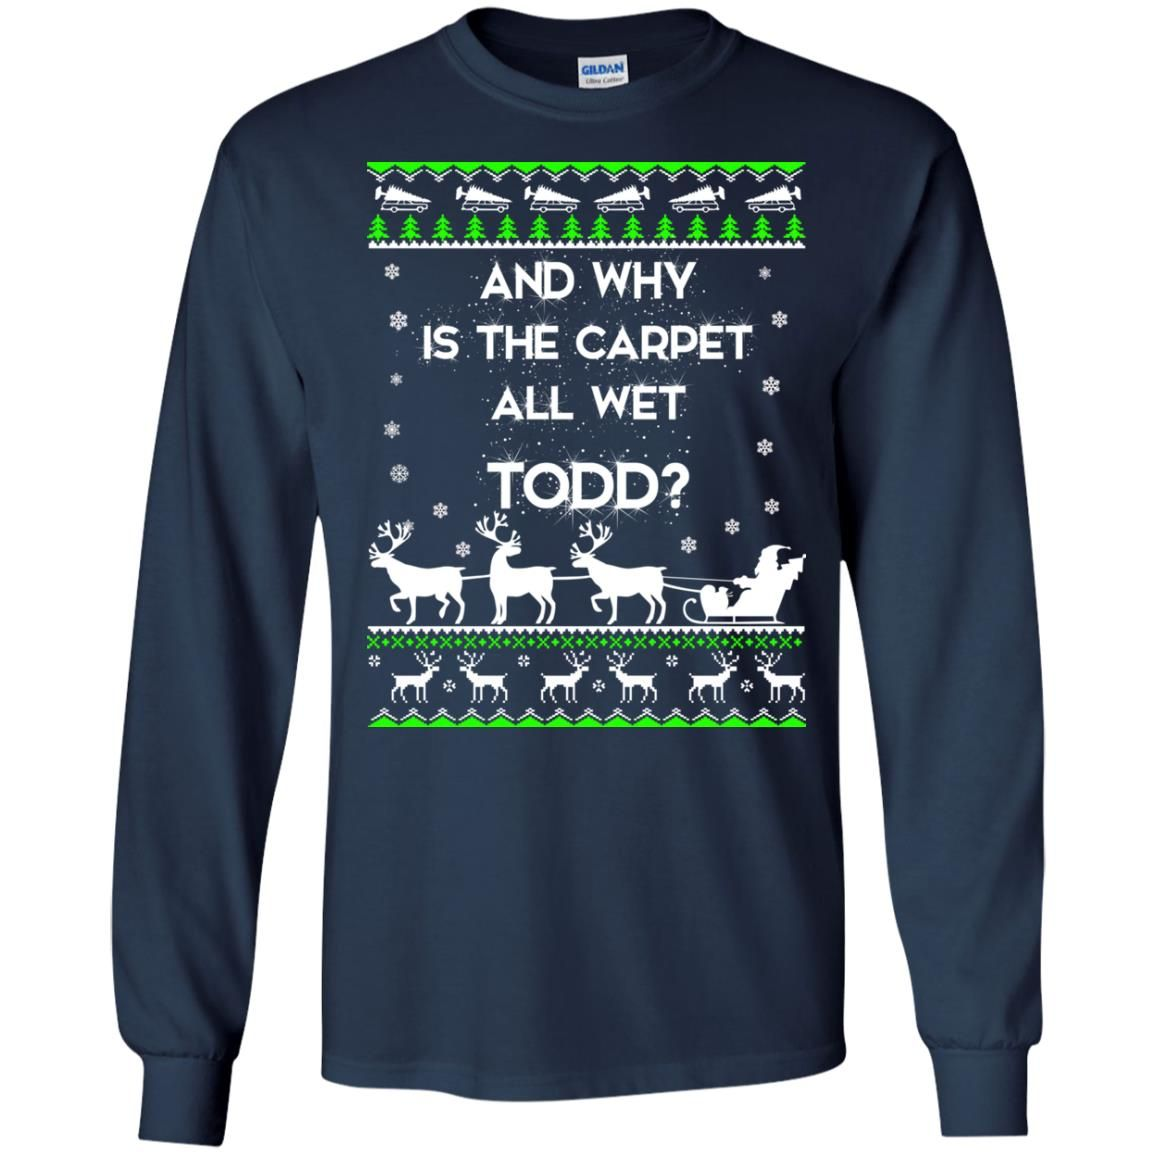 image 1603 - Christmas Vacation: And why is carpet all wet TODD ulgy sweater, hoodie